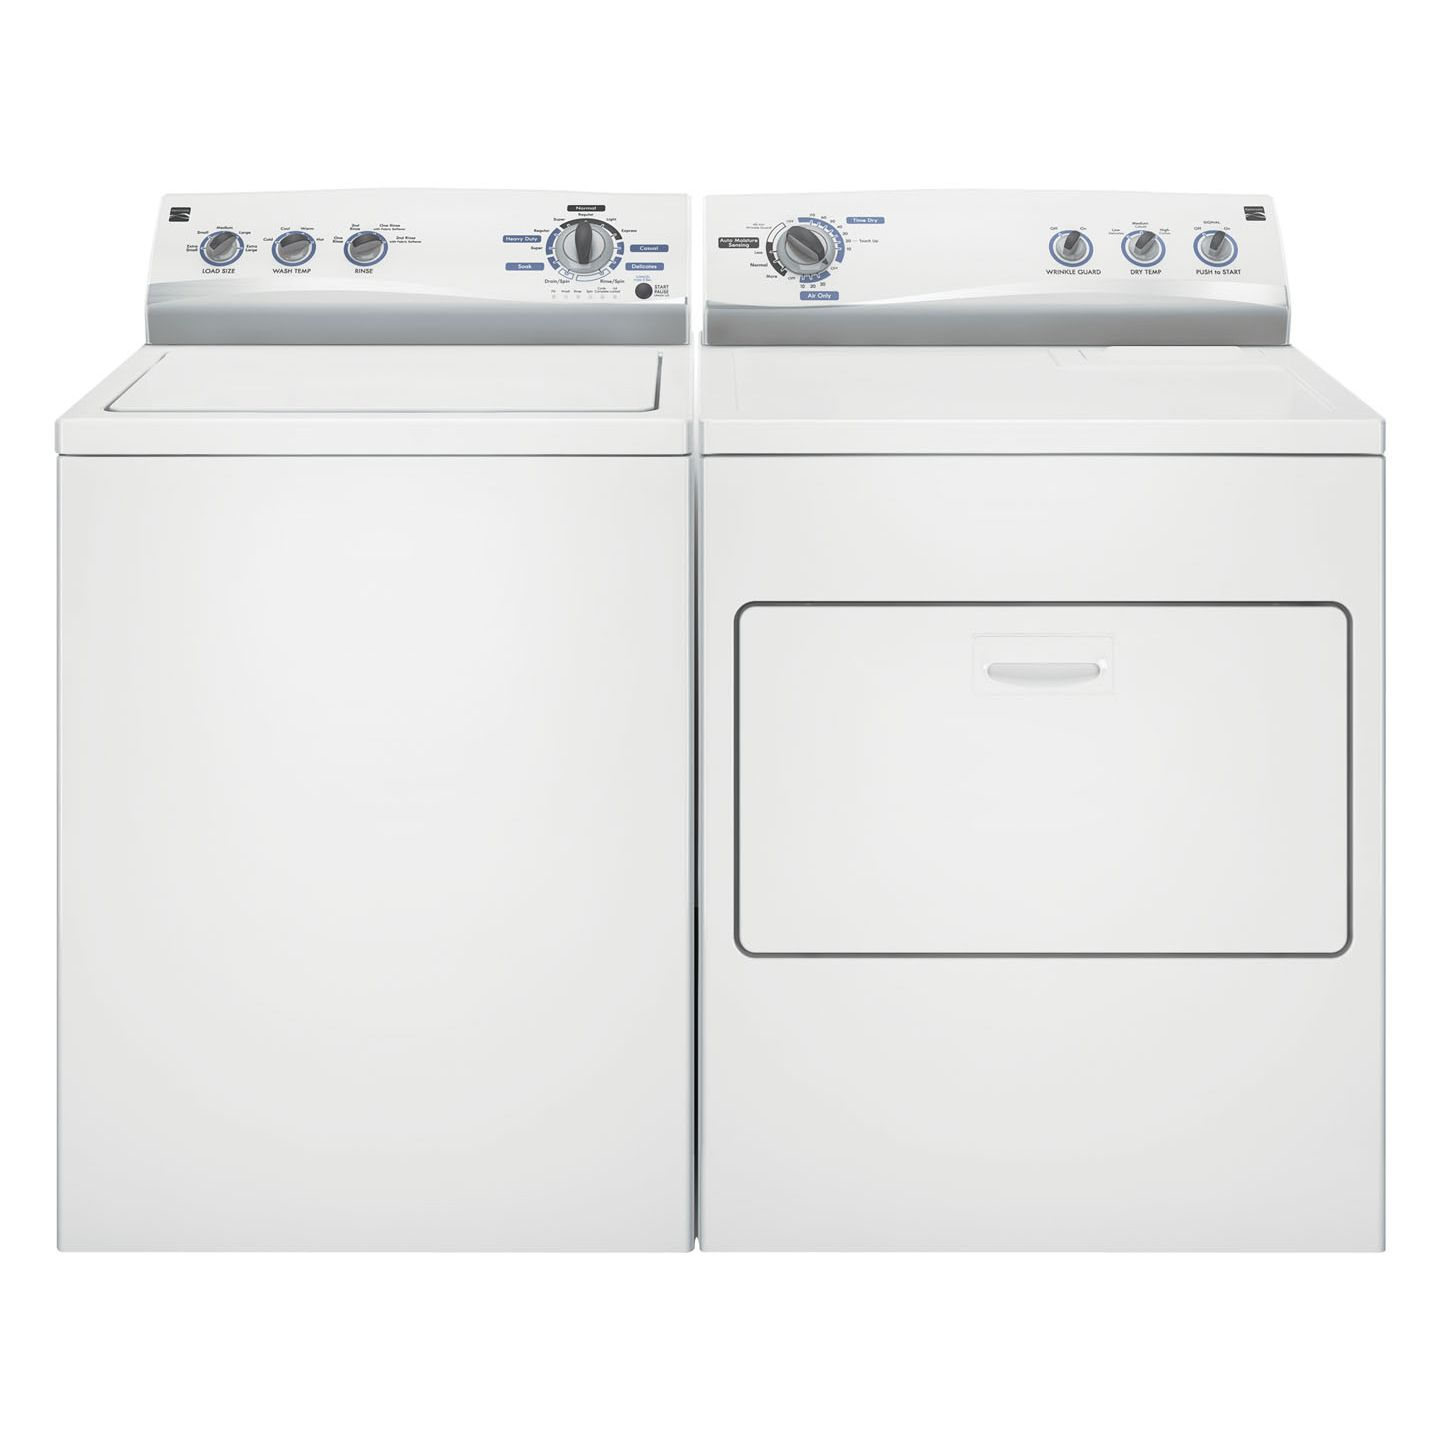 Kenmore 7.0 cu. ft. Electric Dryer - White